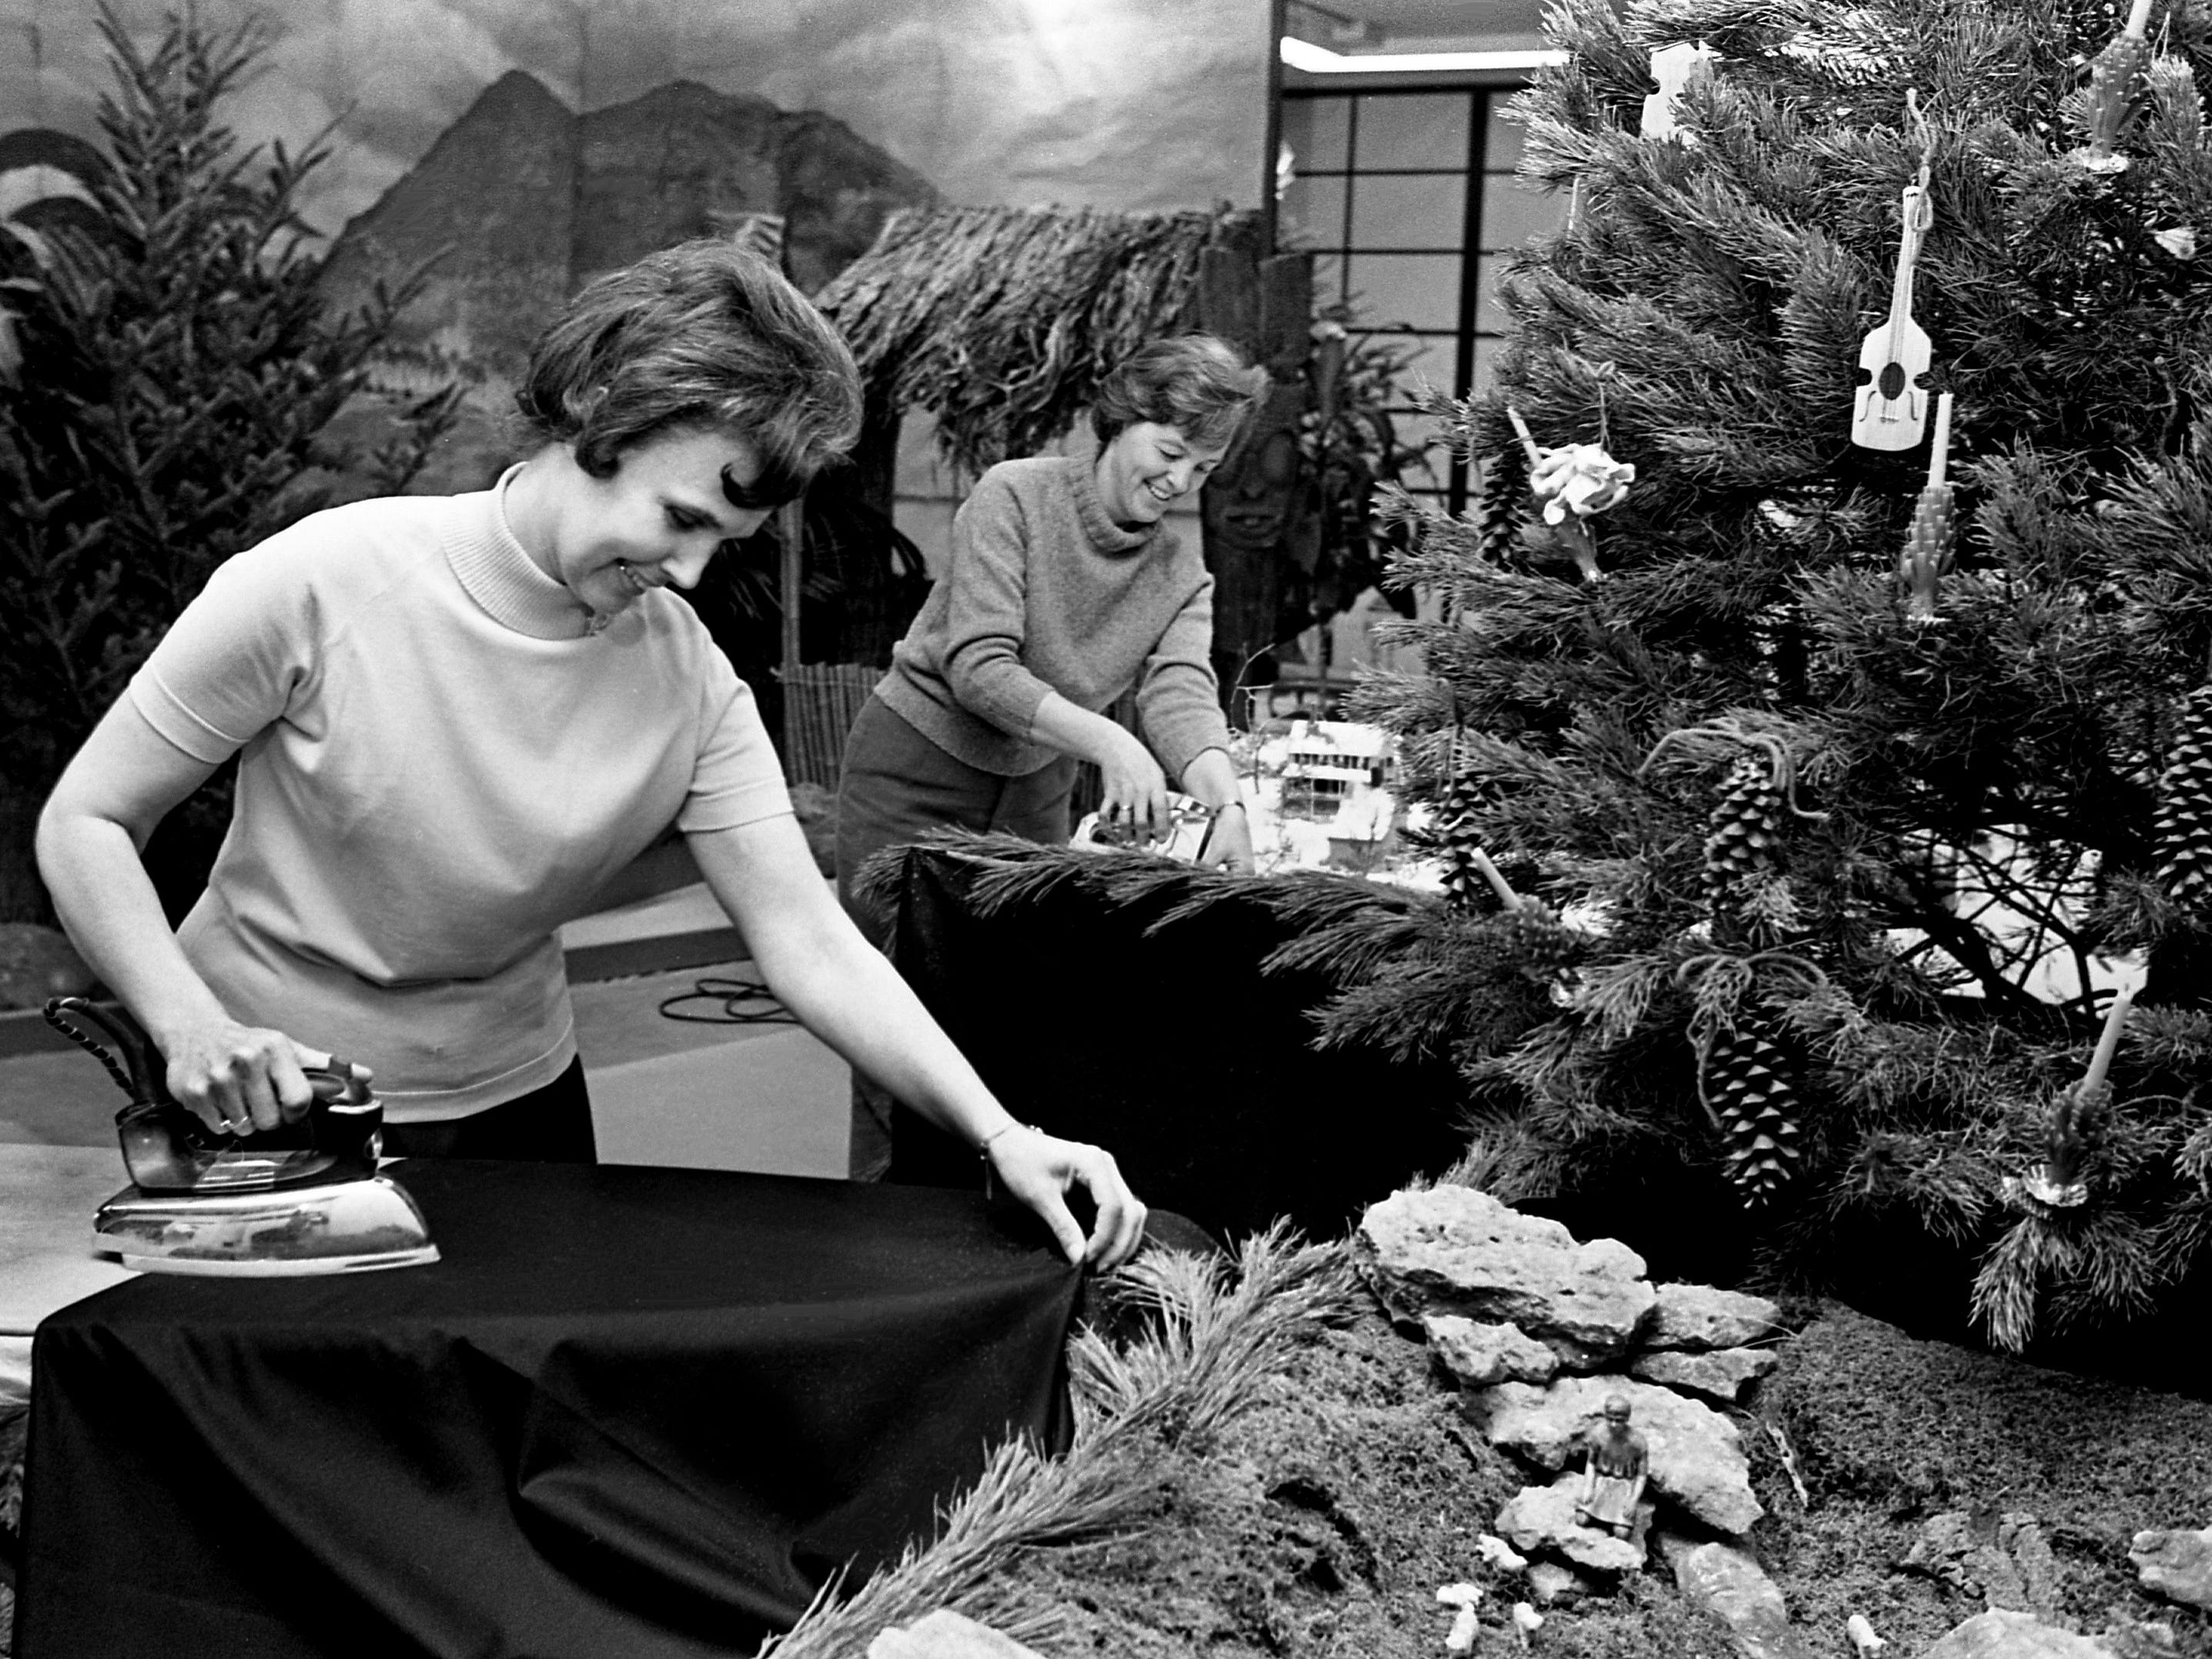 Irons and staplers were busy all week as members of more than 75 garden clubs were working on the 21 trees from many lands and seven exhibits for the upcoming 4th annual Christmas at Cheekwood event. Ironing material for the skirts of the Fleur de Lis Garden Club exhibit Dec. 3, 1968 is Mrs. Lem Tanksley, left, and stapling is Mrs. O.D. Glaus.